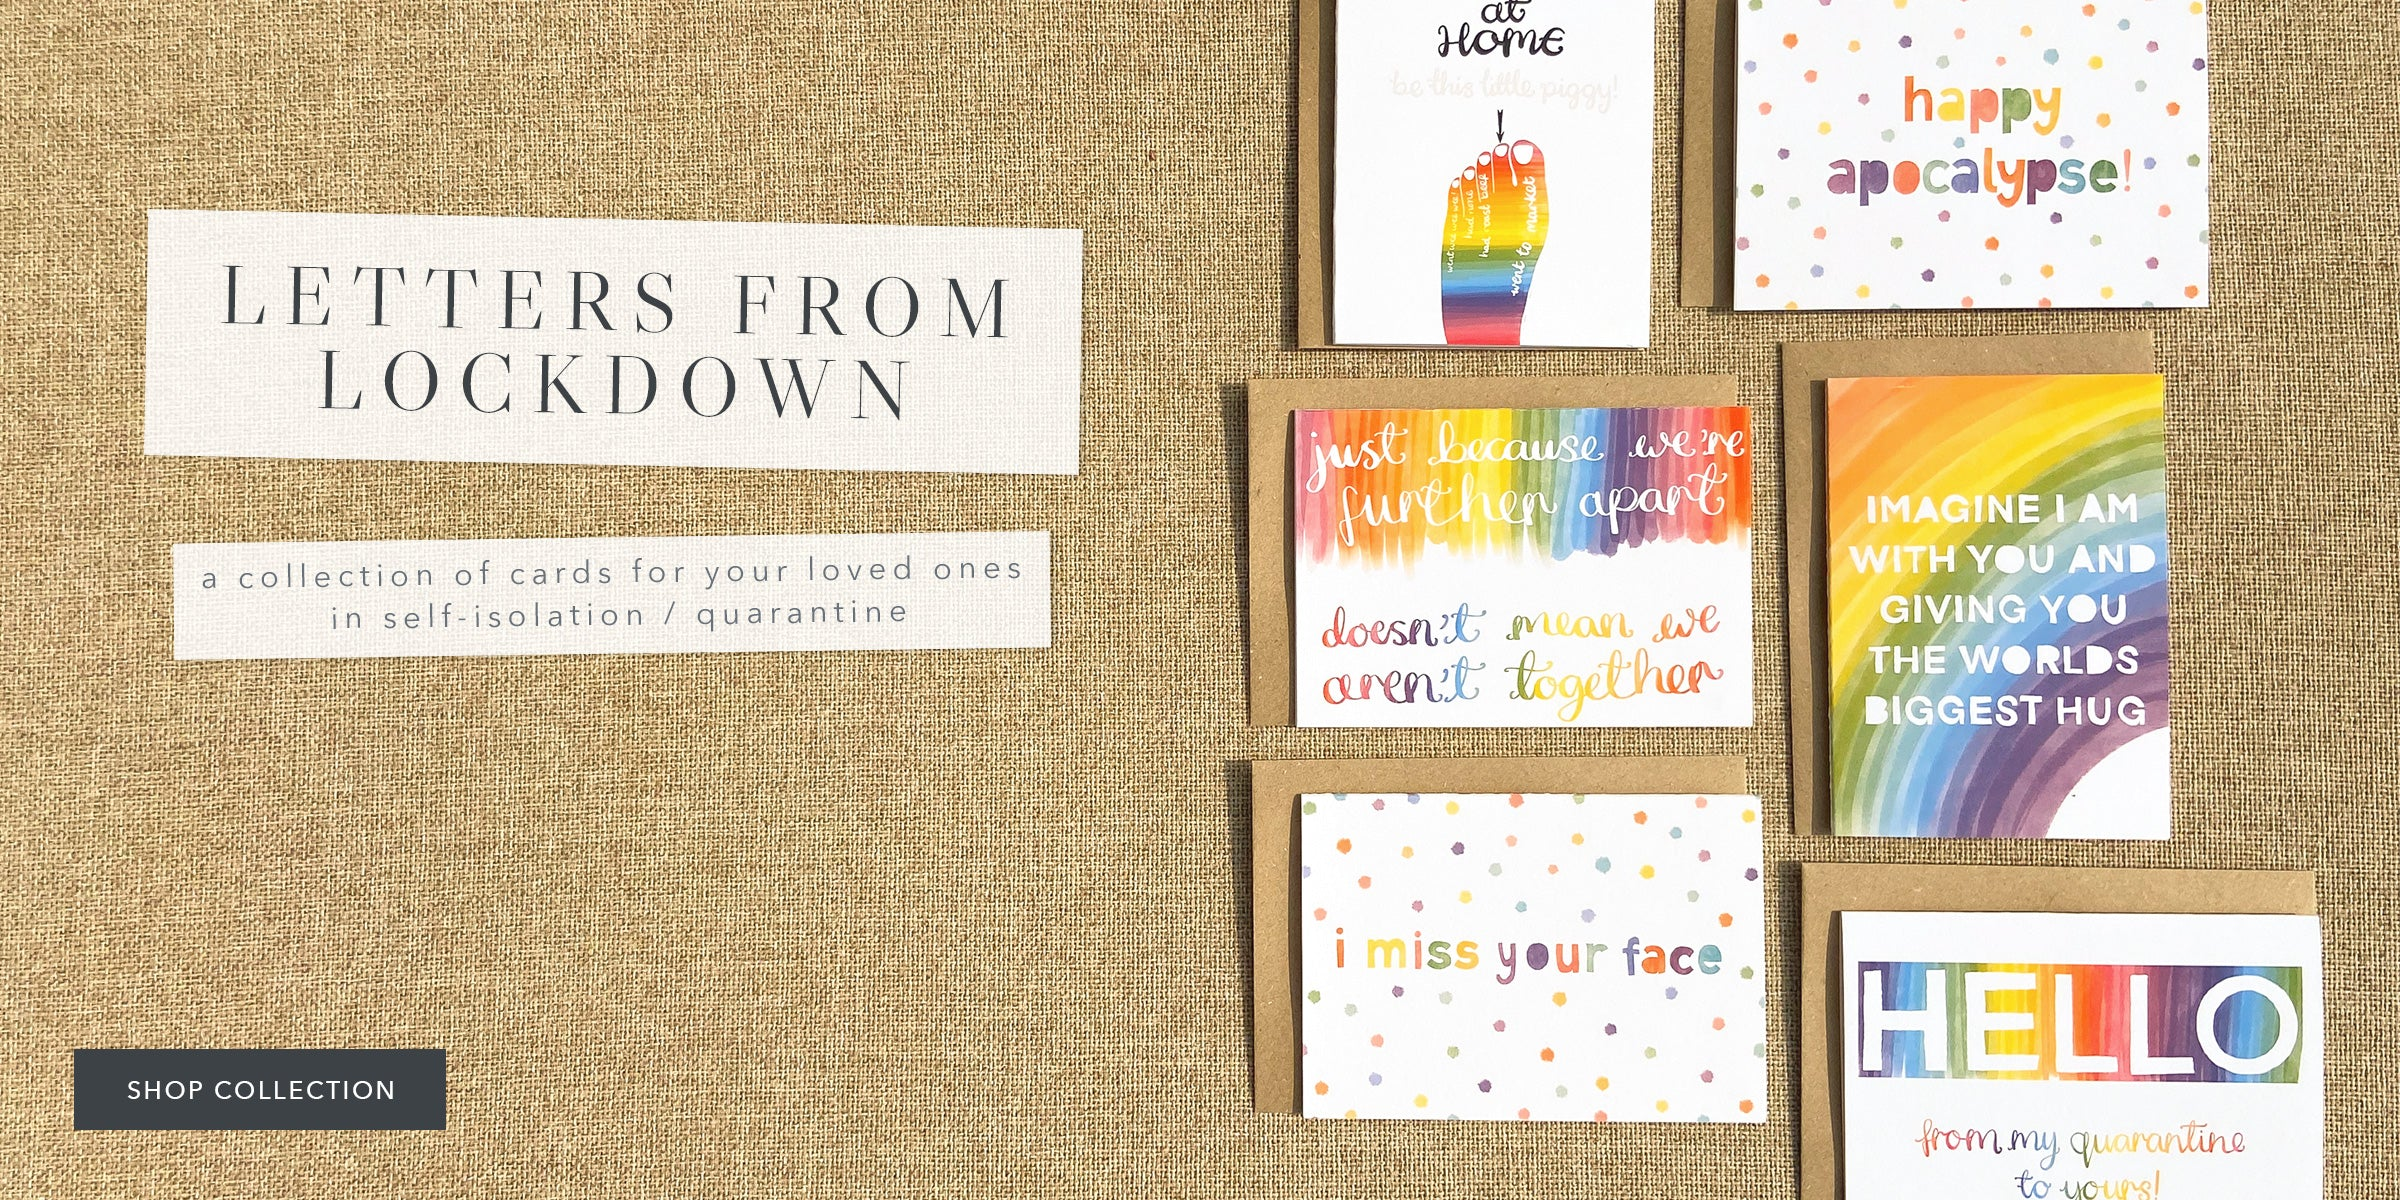 Letters From Lockdown Cards For Quarantine Card Collection for Loved ones in Self-Isolation